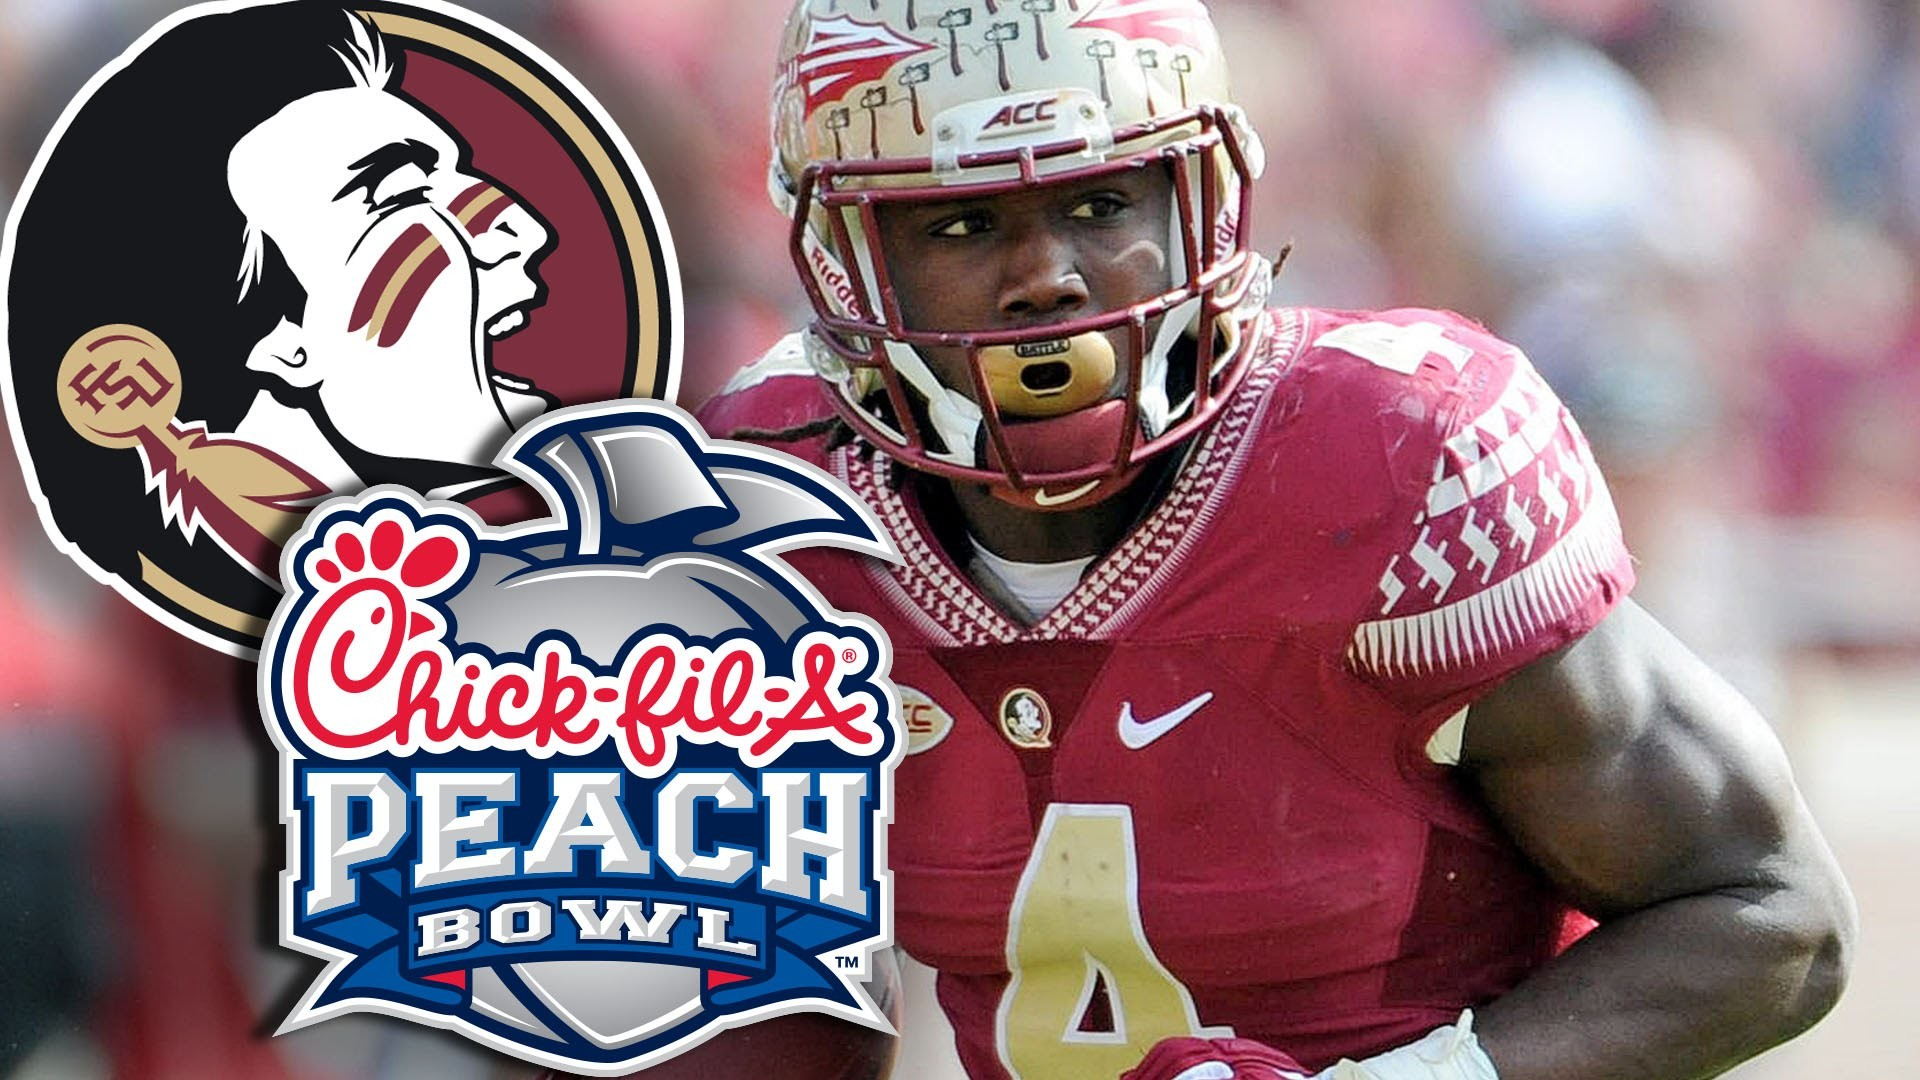 Florida State Football Chick-fil-A Peach Bowl Hype Video